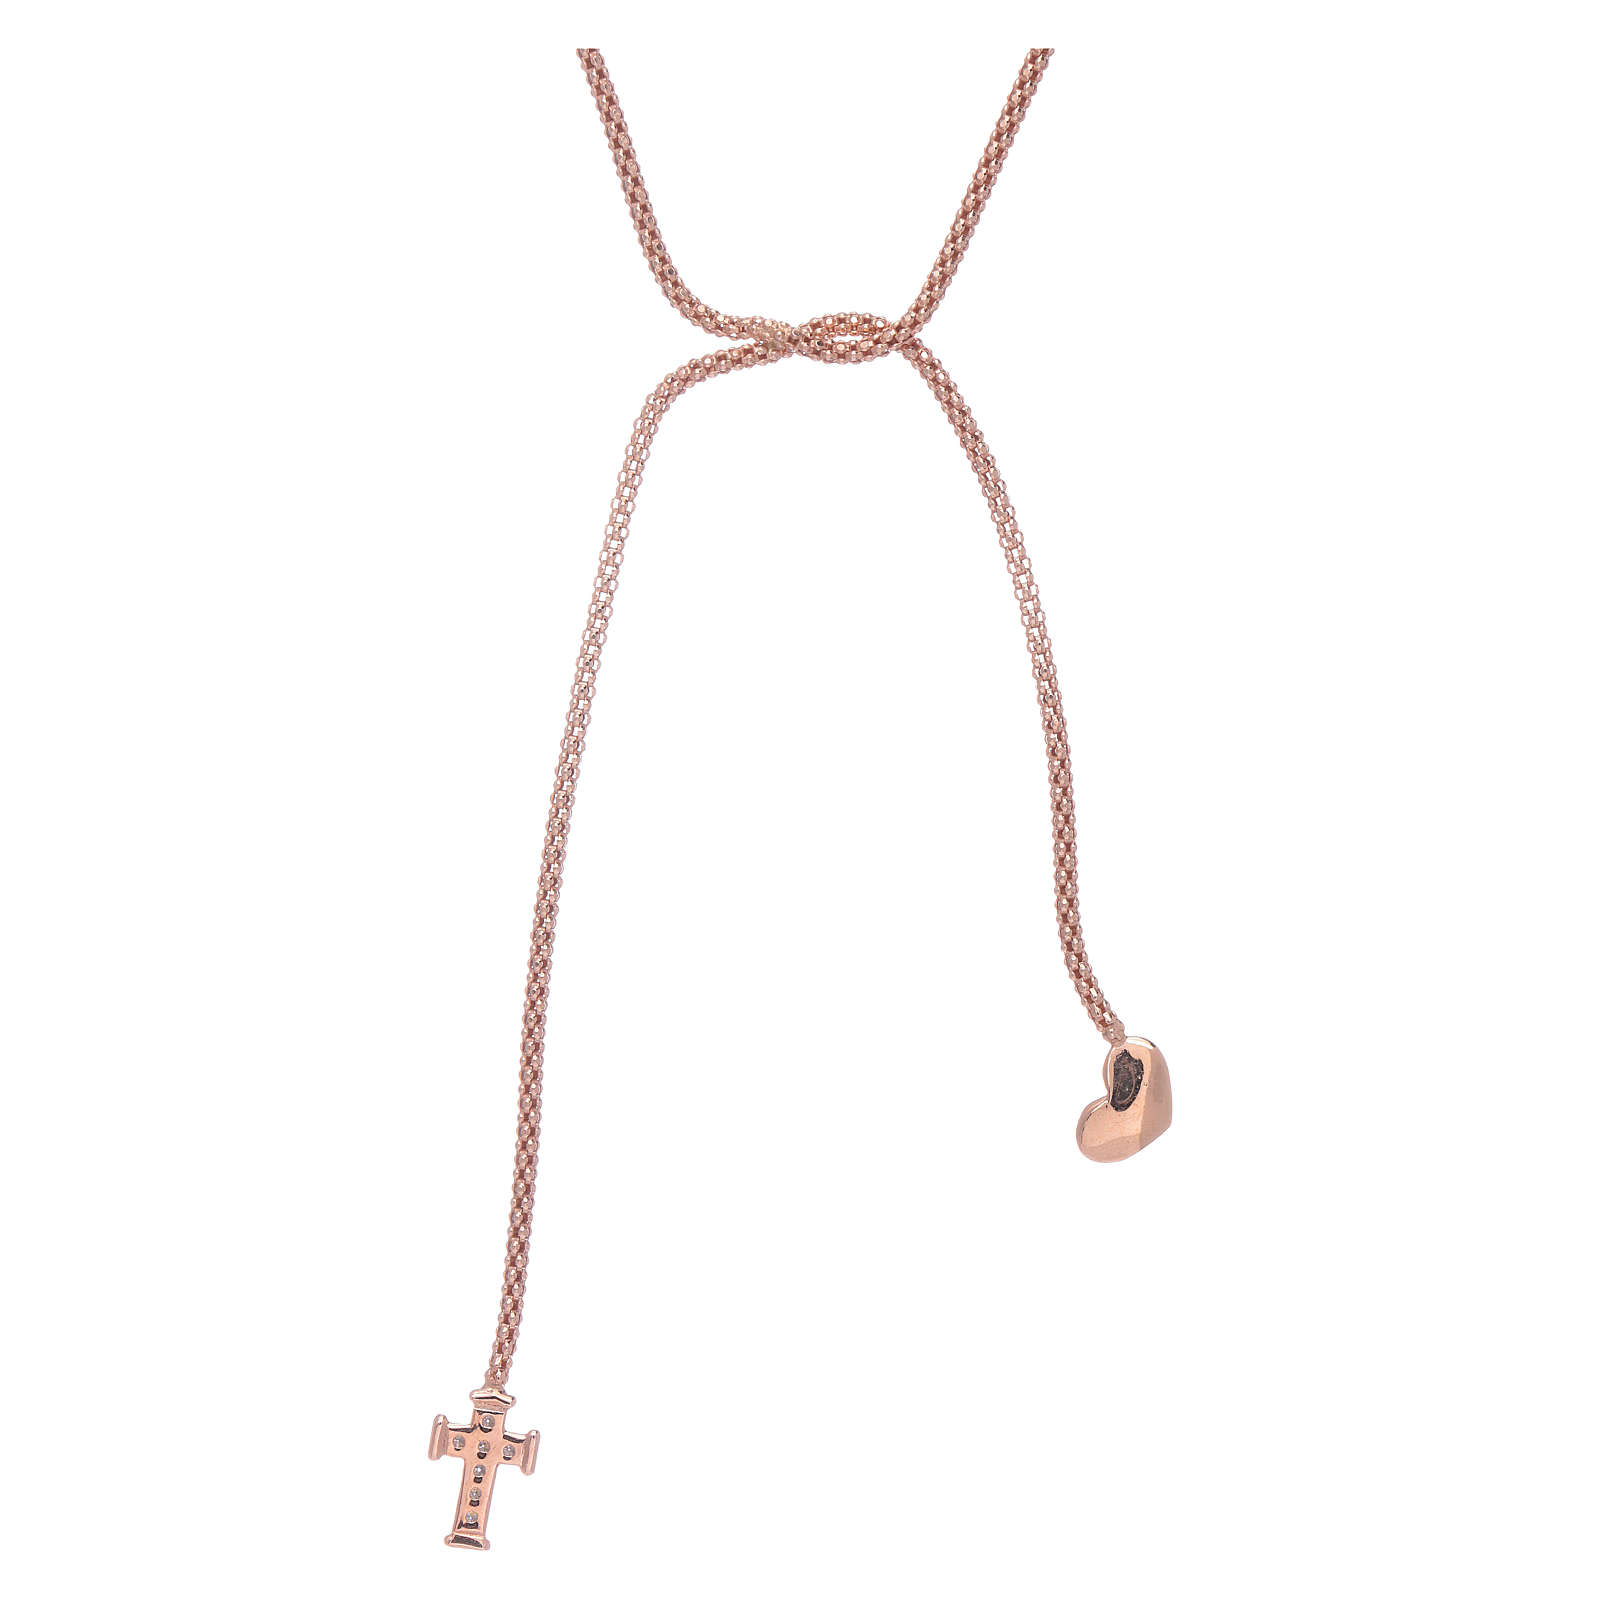 AMEN necklace in 925 sterling silver finished in rosè with hug, hearts and cross decorated with white zircons 4